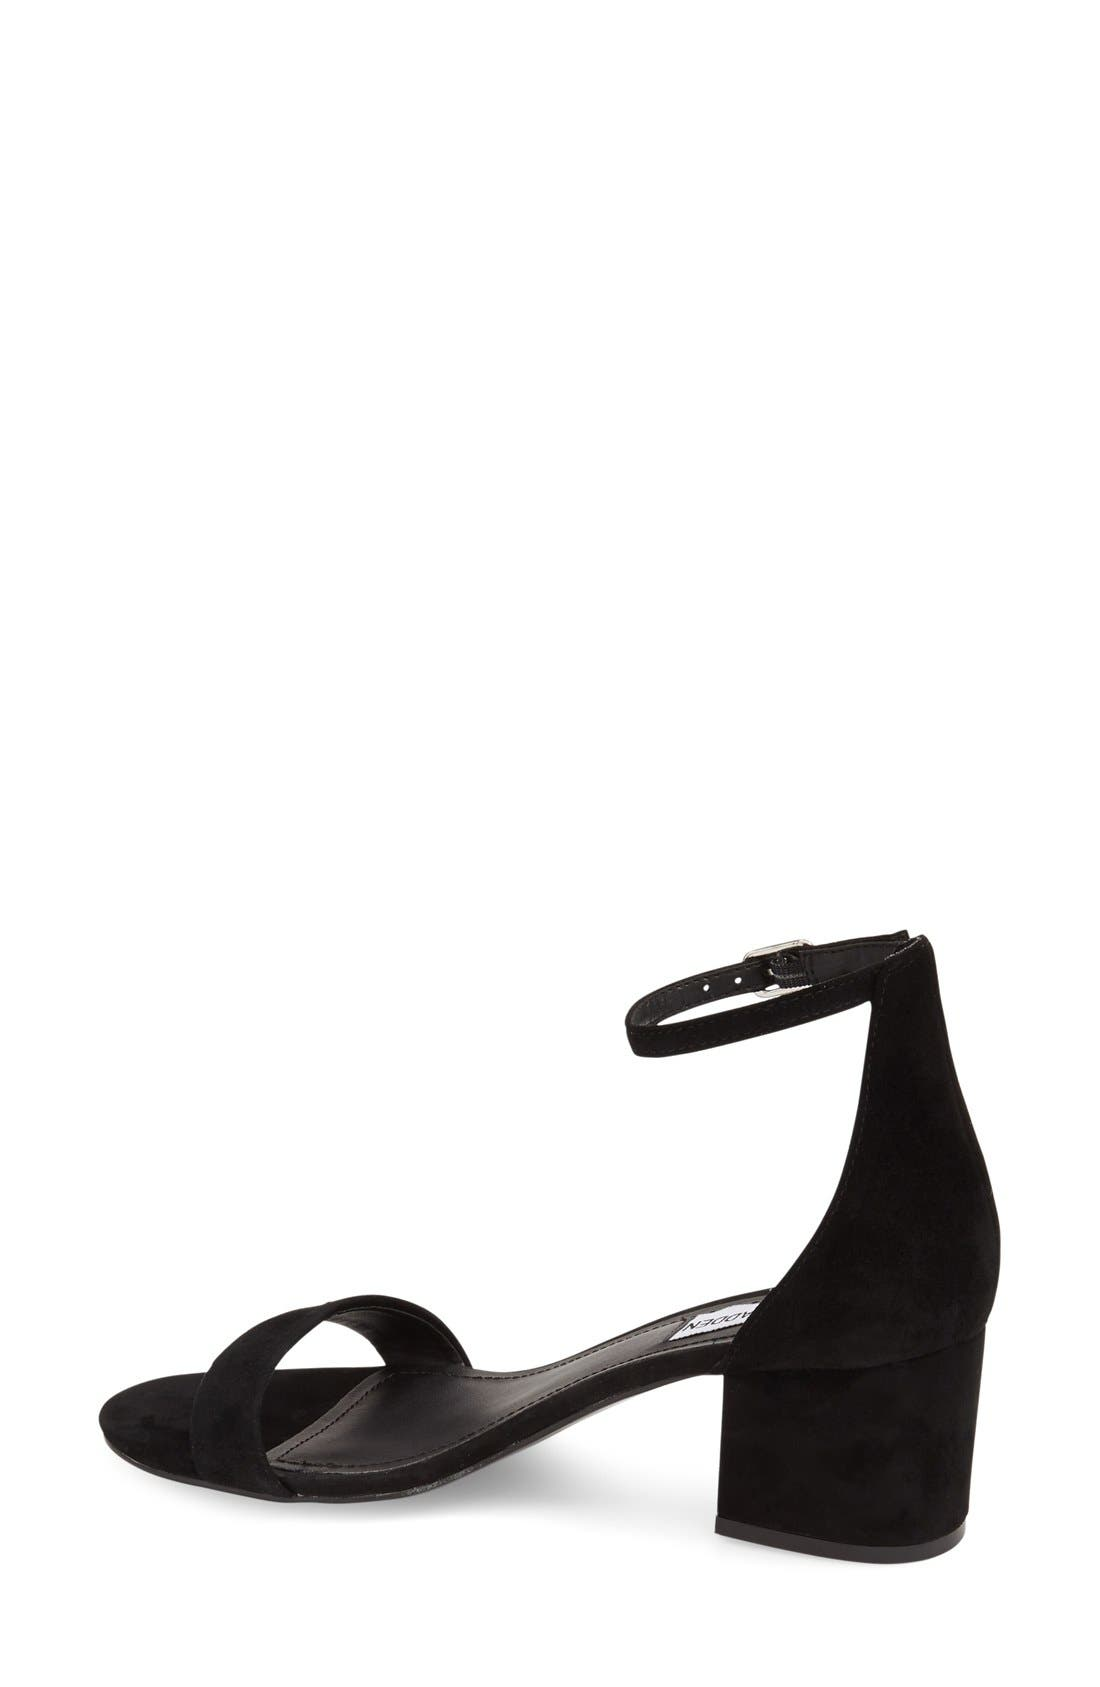 STEVE MADDEN, Irenee Ankle Strap Sandal, Alternate thumbnail 3, color, BLACK SUEDE